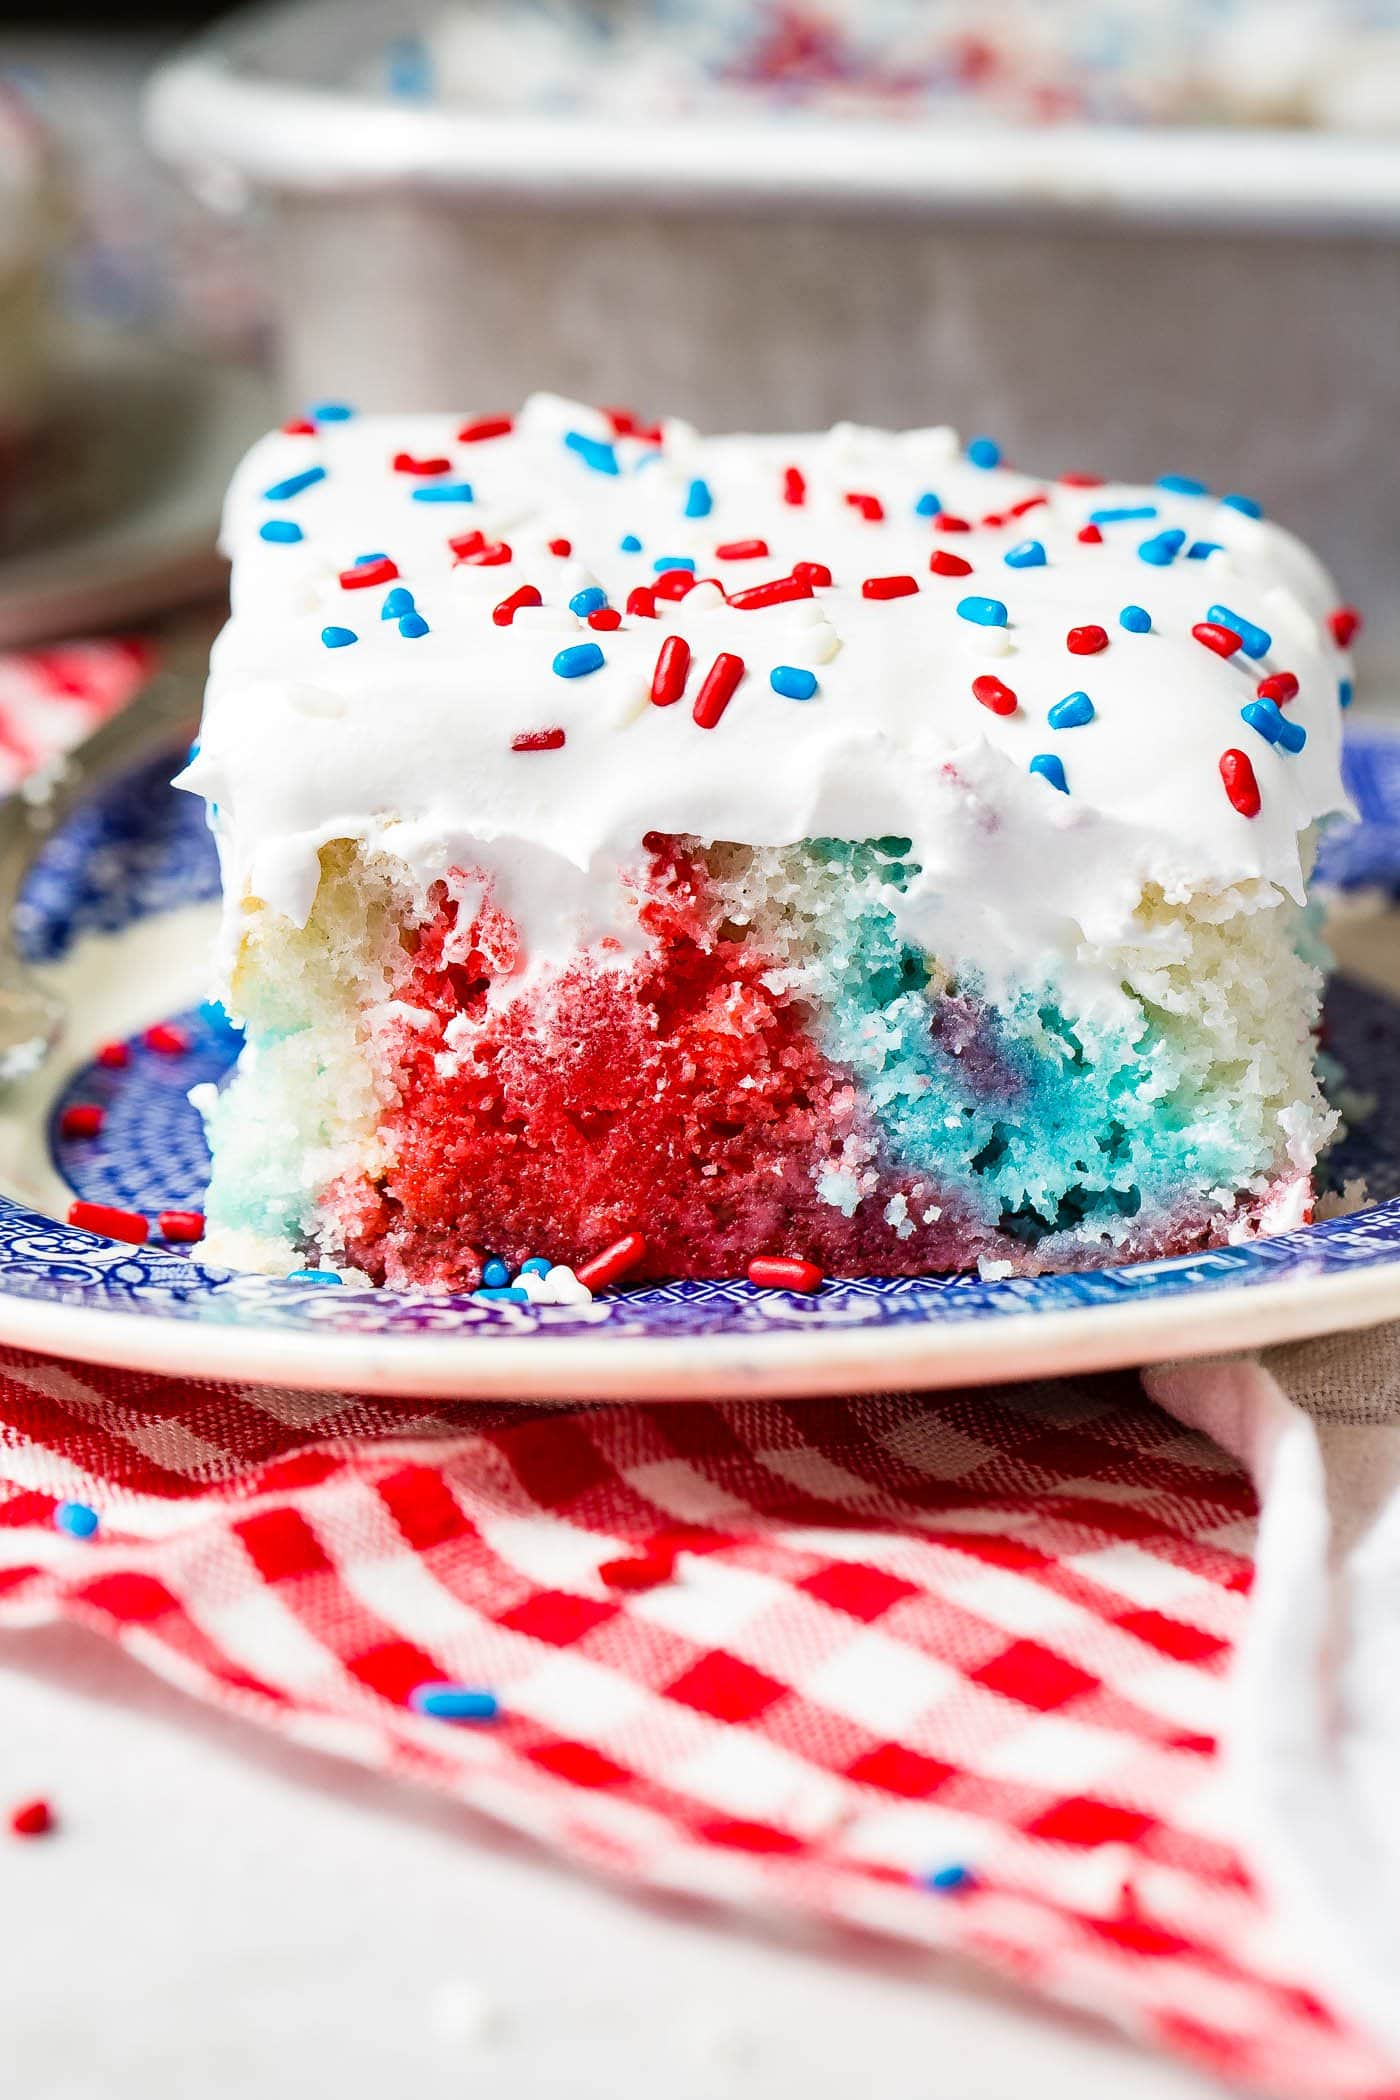 A piece of red, white and blue poke cake on a blue and white dessert plate. The cake is frosted with white frosting and sprinkled with red, white and blue sprinkles. You can see the red, white and blue portions of the cake where holes have been poked and jello poured in.